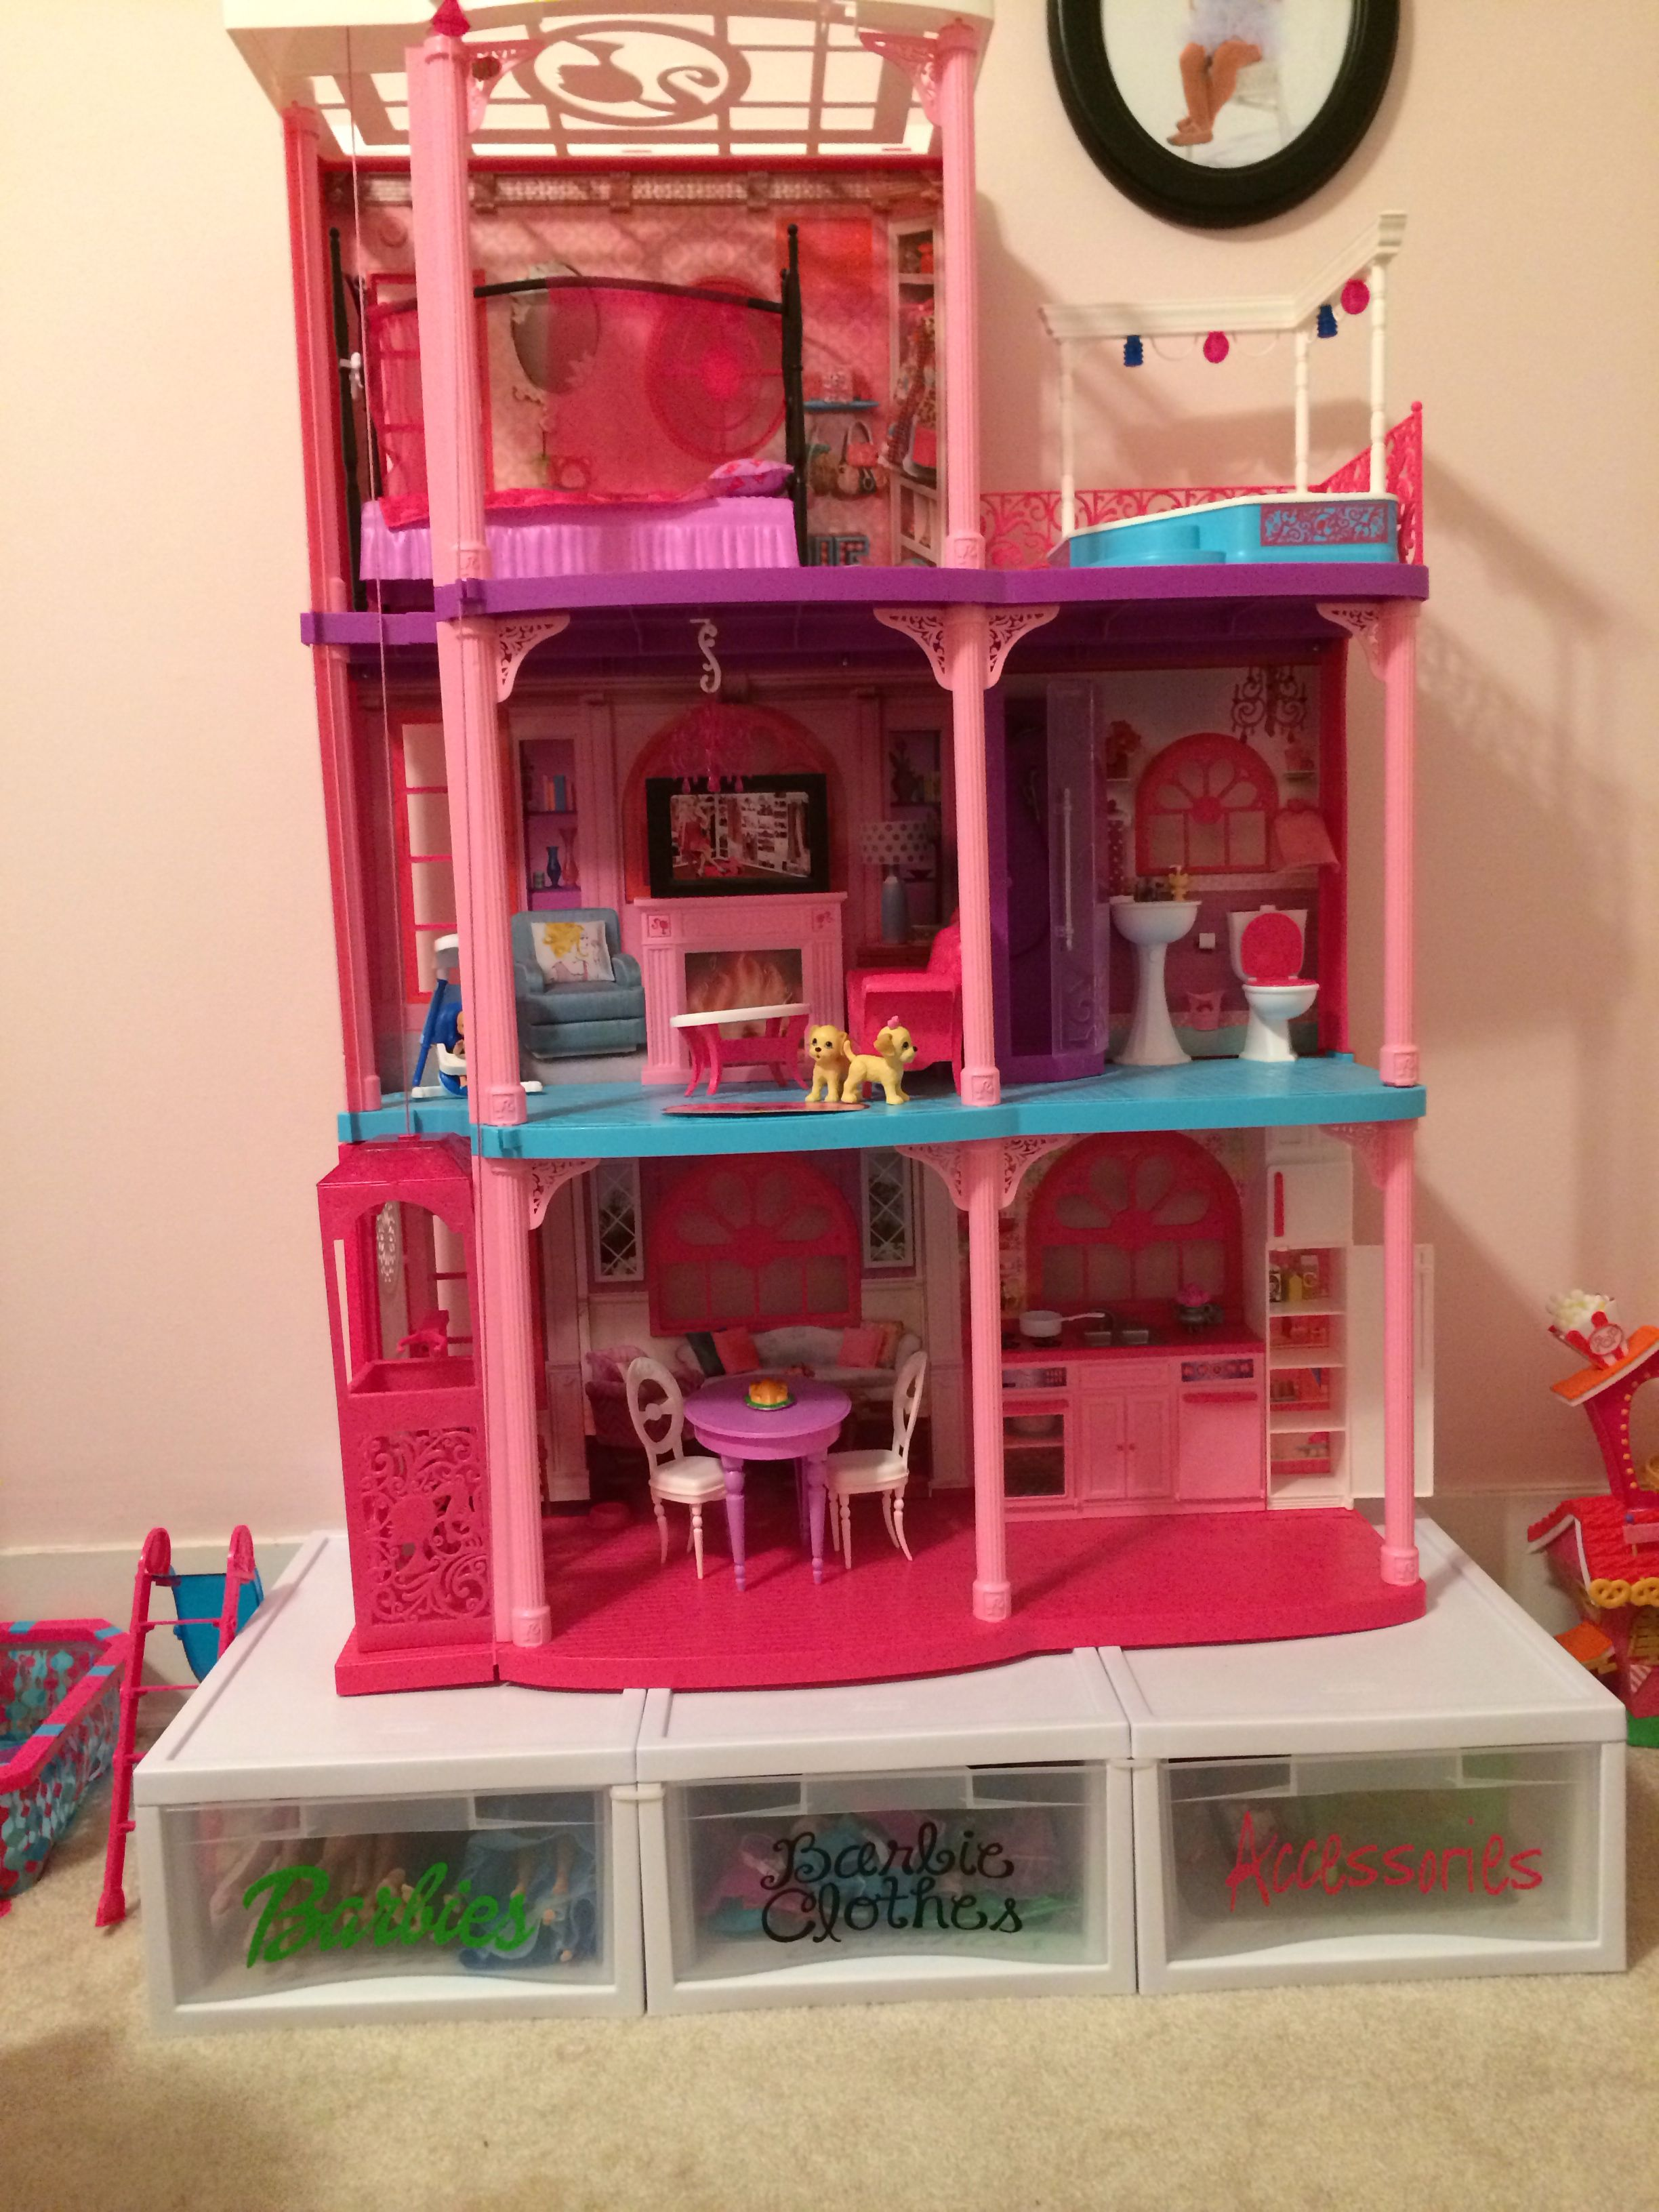 Barbie Bedroom In A Box: Barbie Storage And Organization: Wire Tie Boxes Together